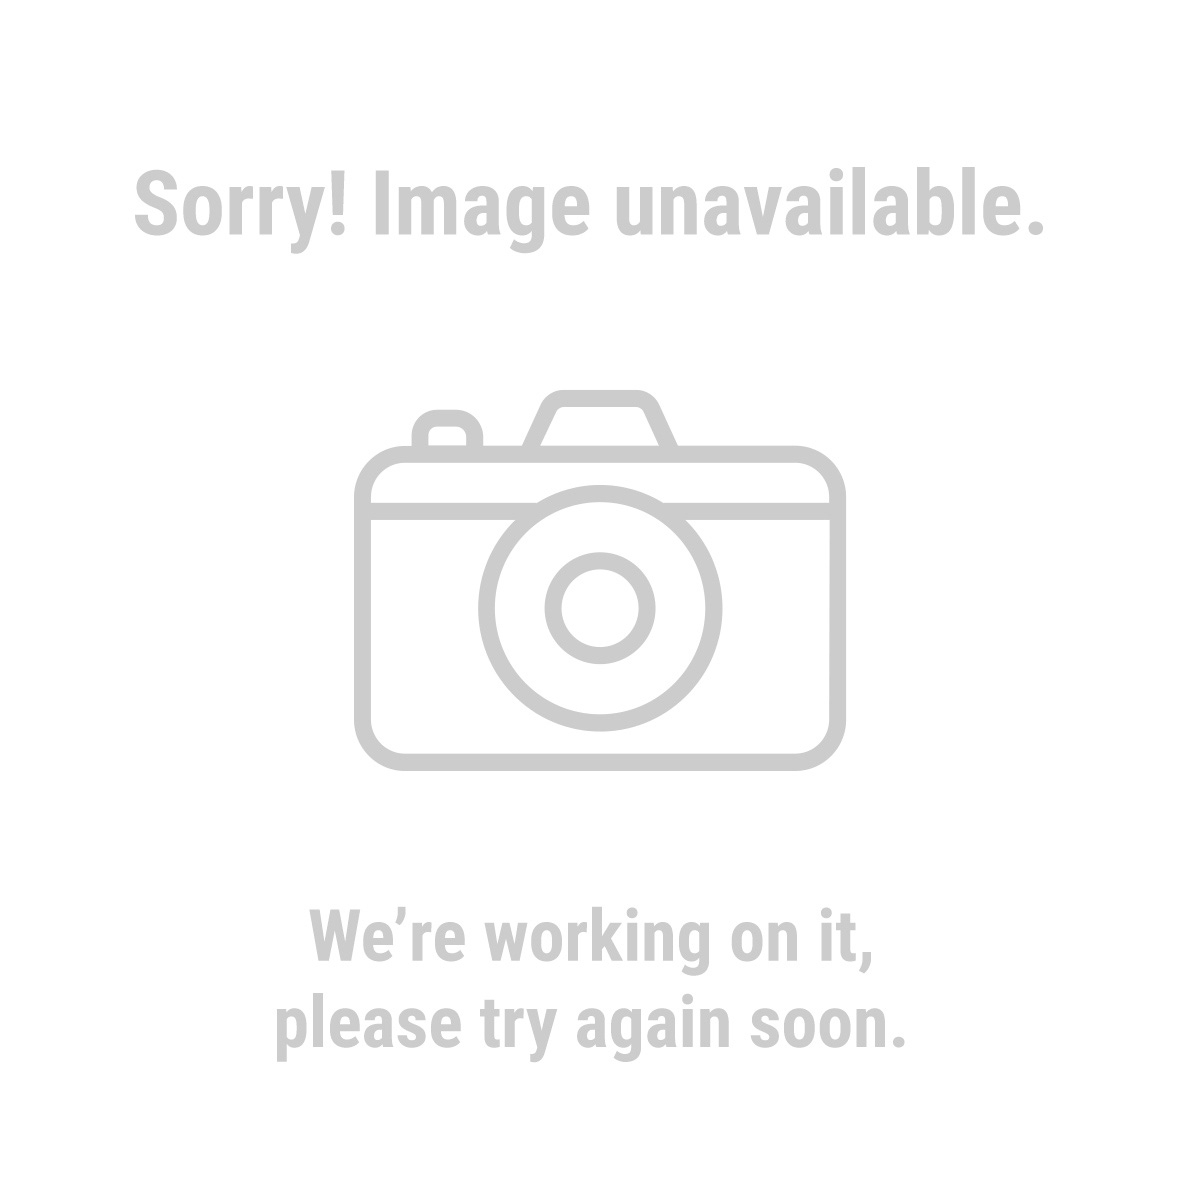 Haul-Master® 61782 3/16 in. x 50 ft. Aircraft Grade Wire Rope